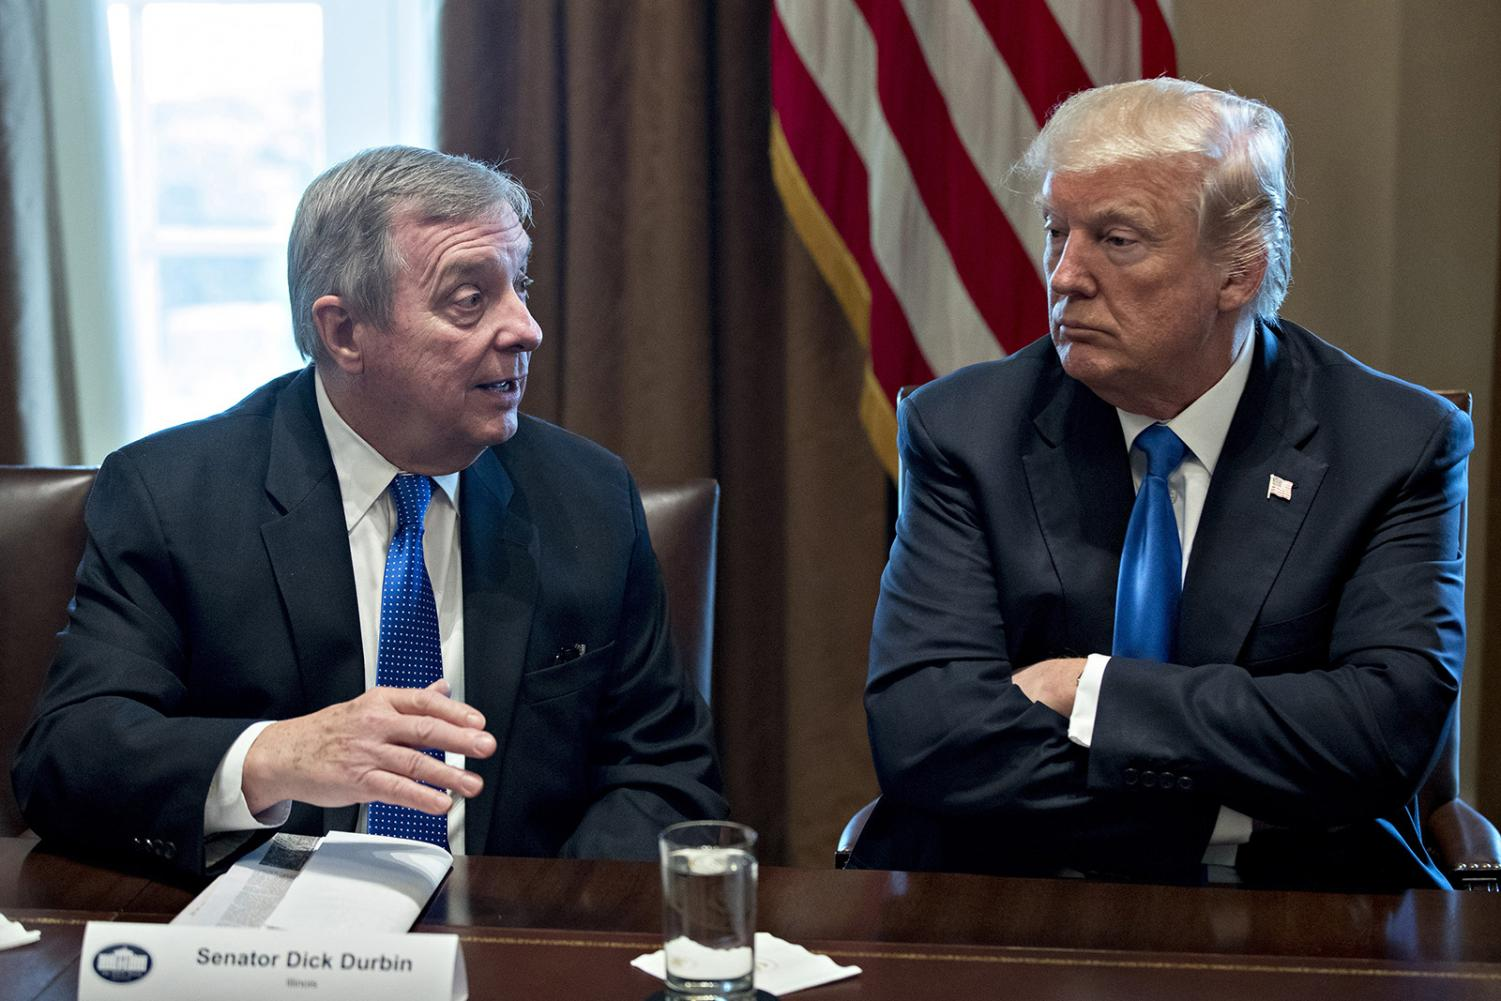 U.S. President Donald Trump, right, listens as Senator Dick Durbin, D- Ill., speaks while meeting with bipartisan members of Congress on immigration in the Cabinet Room of the White House in Washington, D.C., U.S., on Tuesday, Jan. 9, 2018.